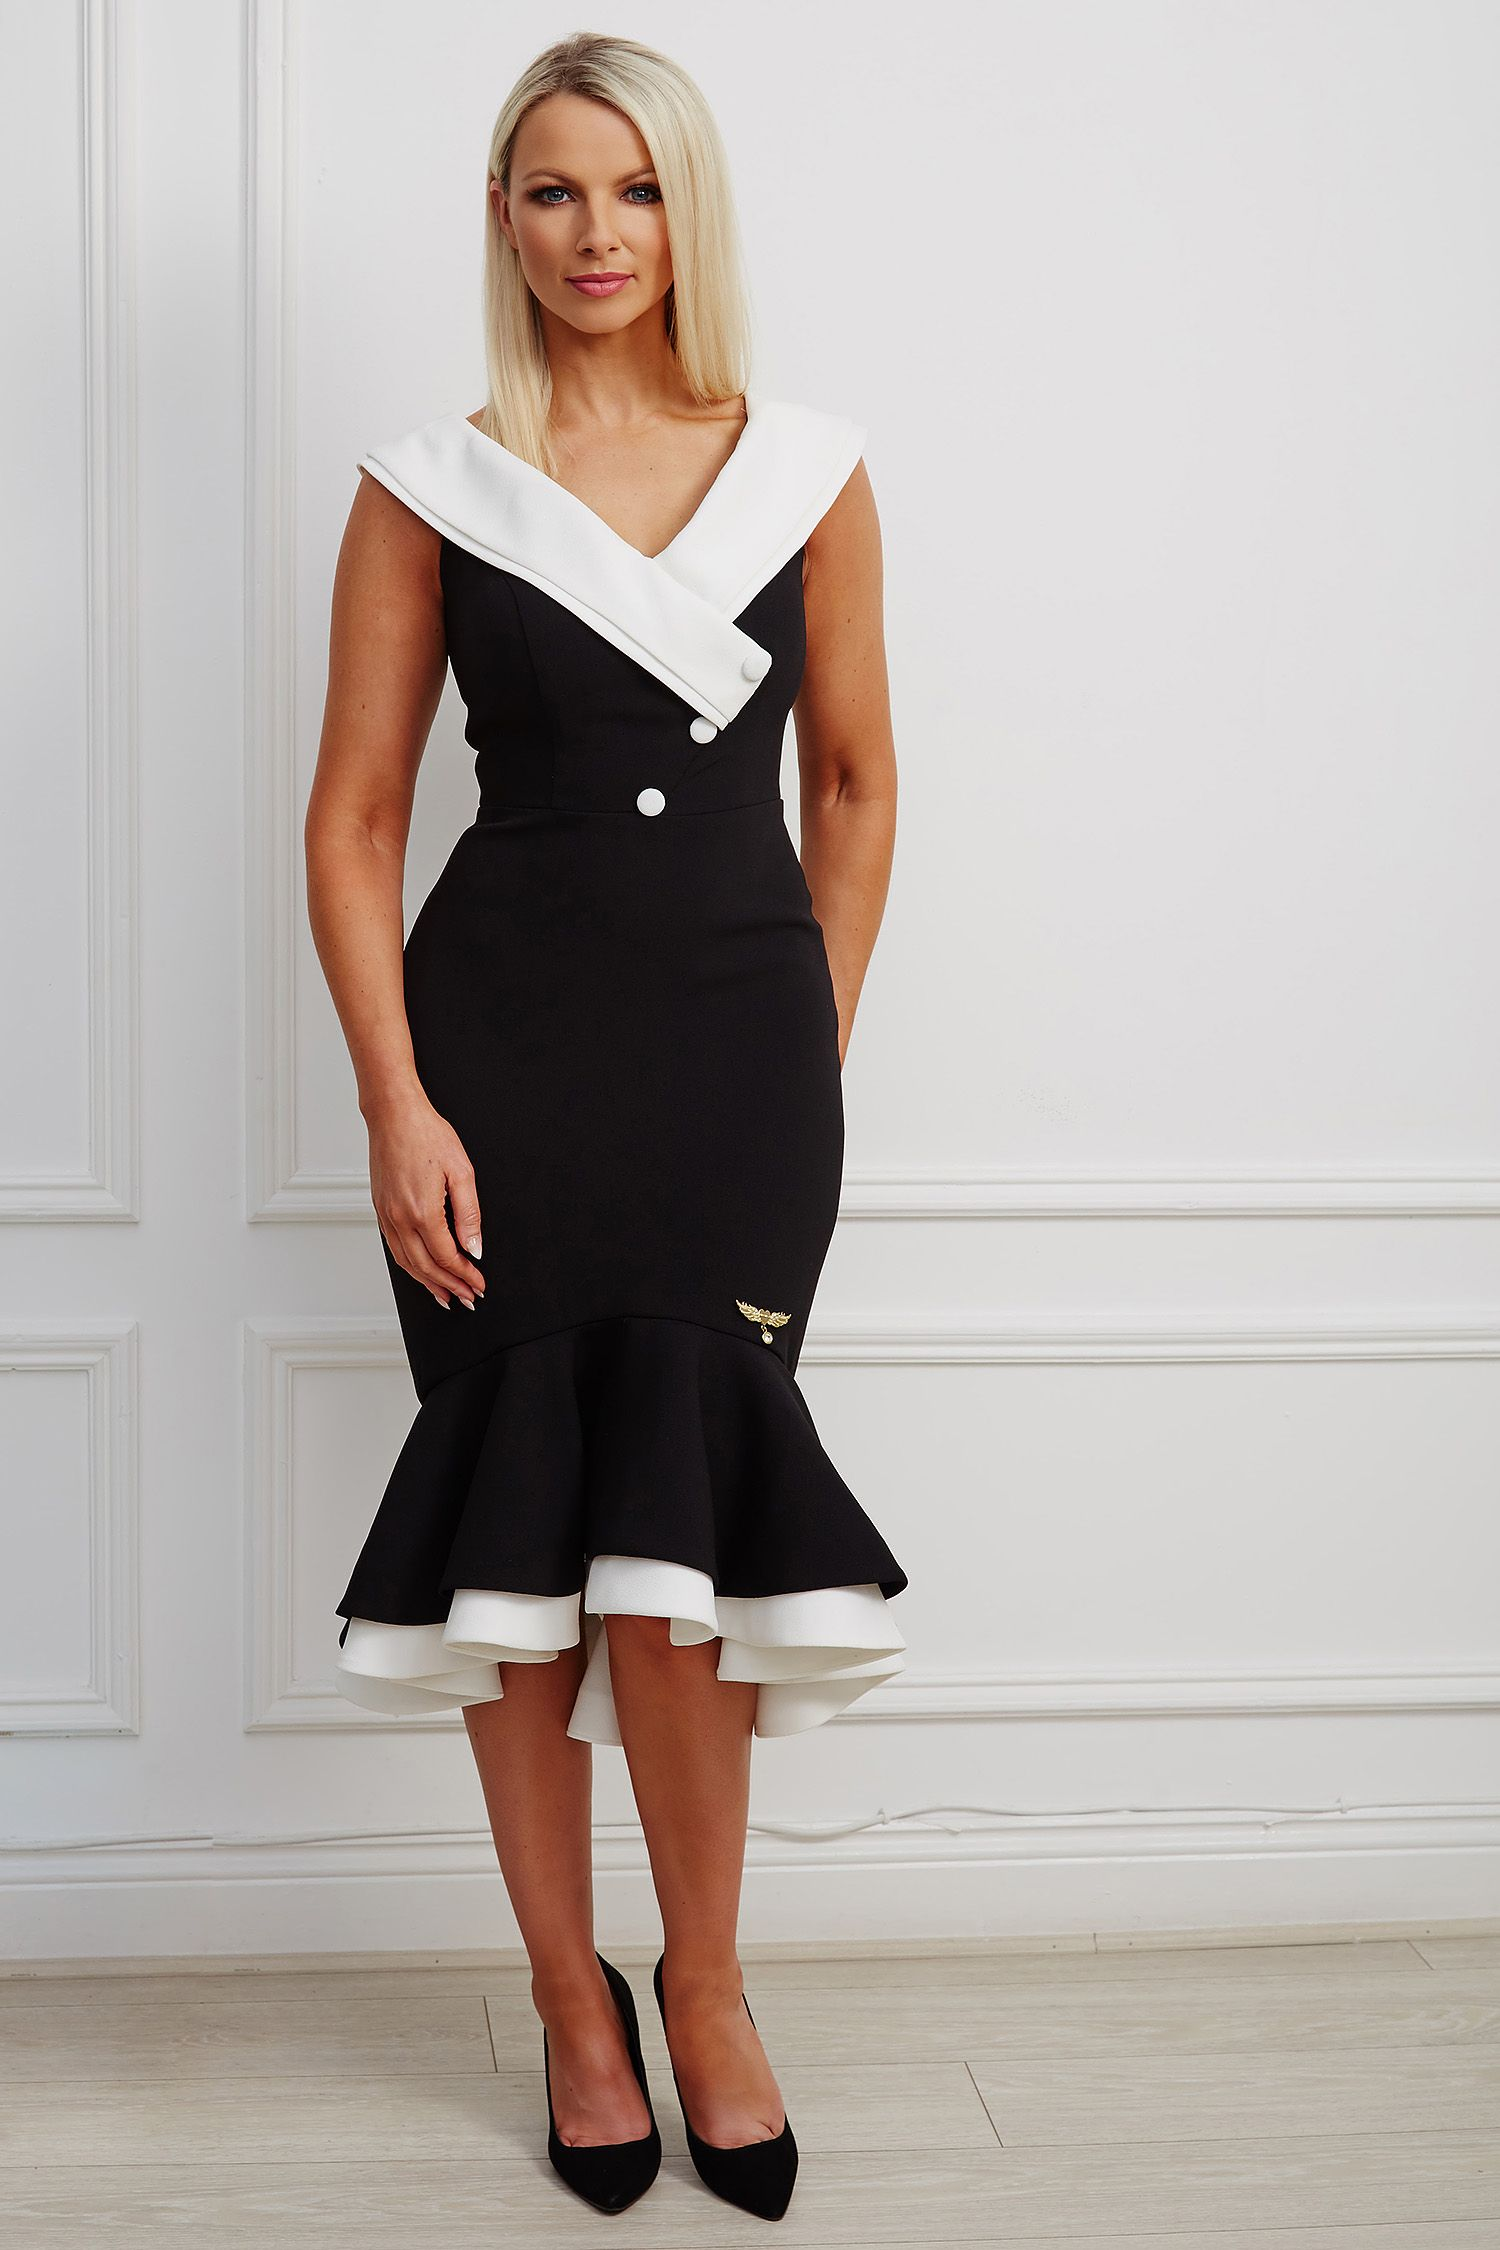 Black and white contrast double fishtail dress with bardot neckline and buttons